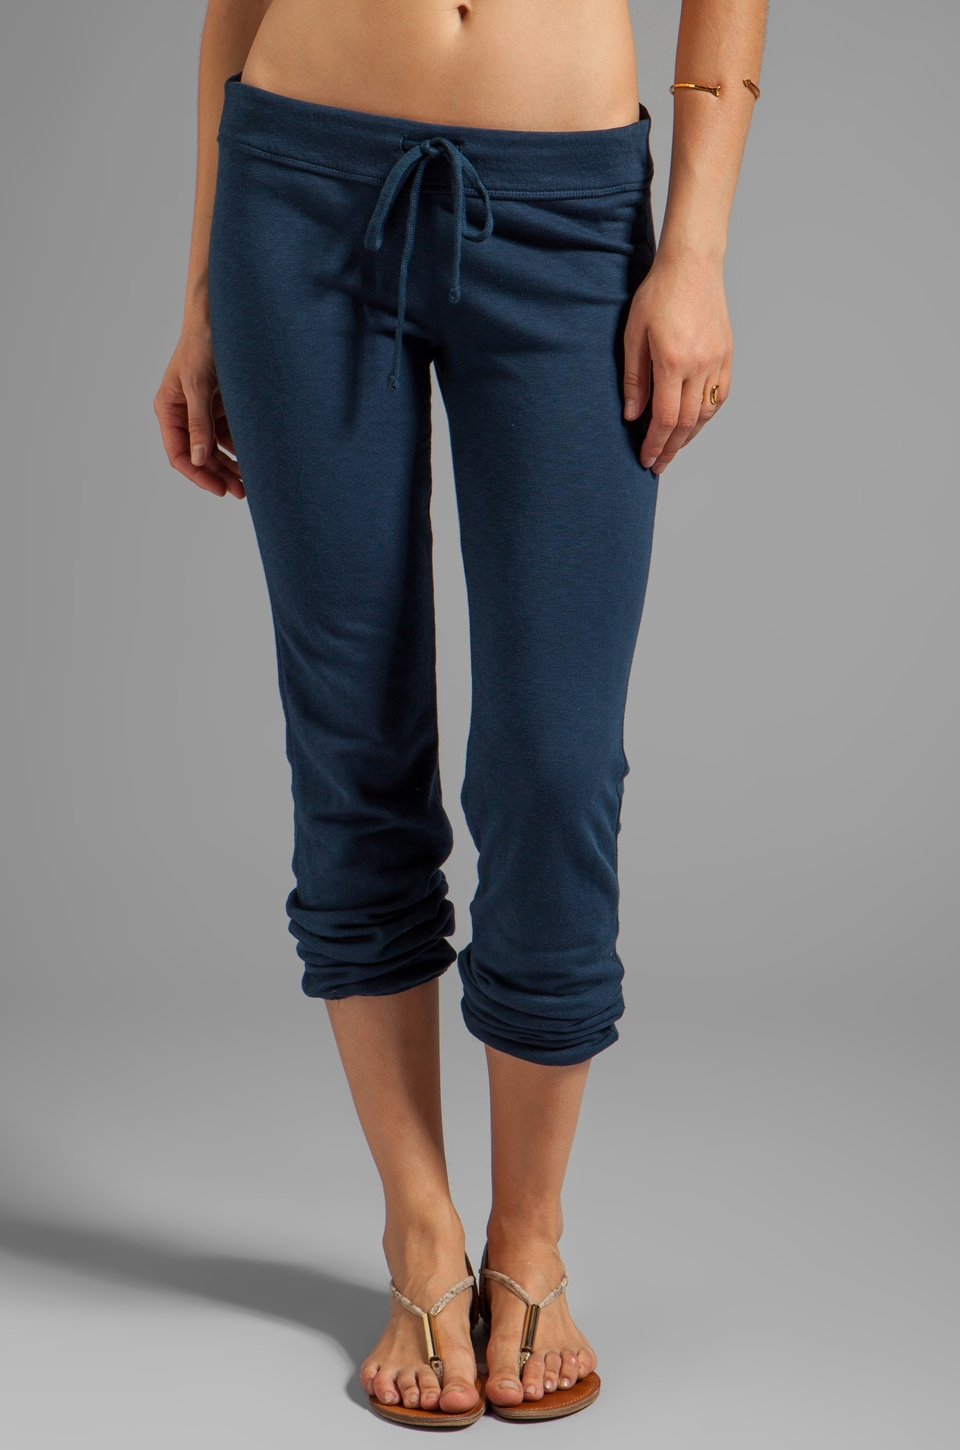 James Perse Vintage Cotton Genie Pant in Imperial